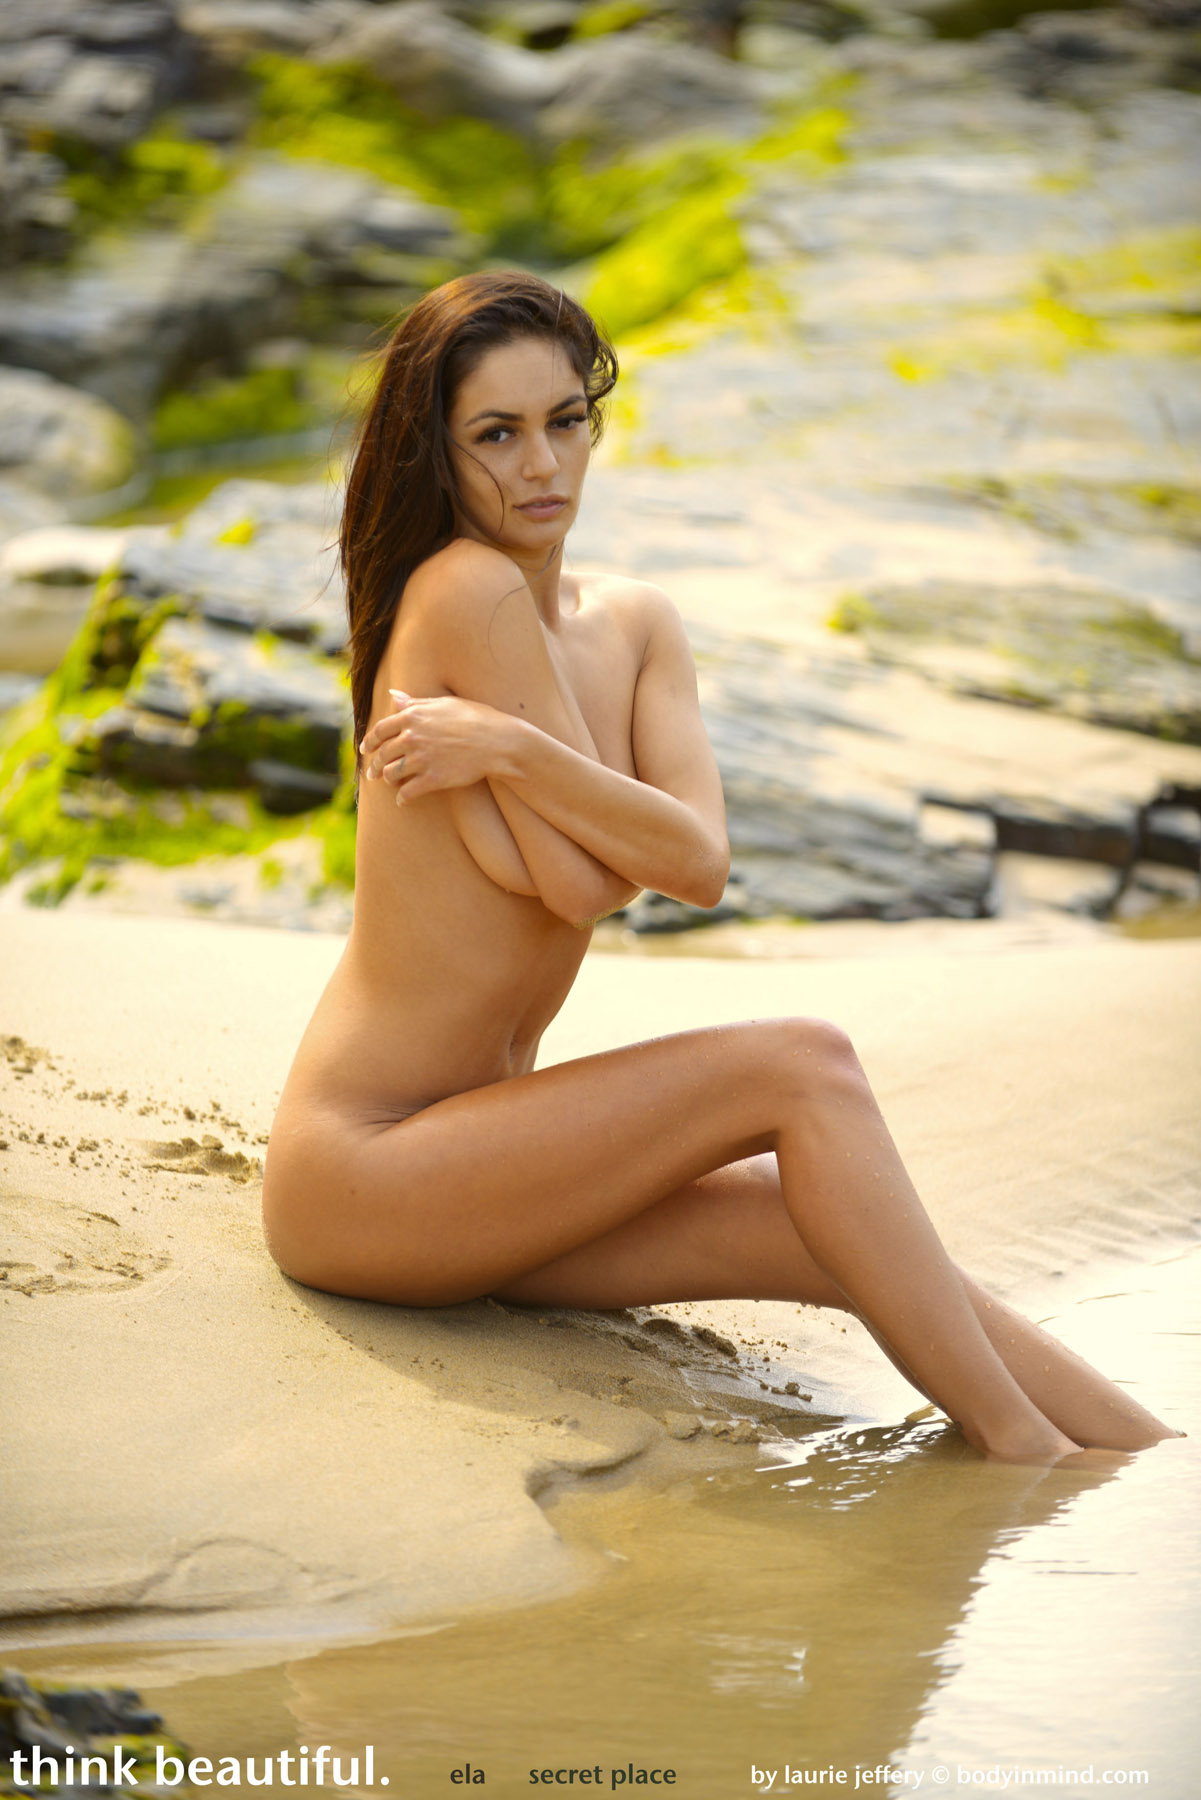 Very grateful ela savanas nude body in mind something